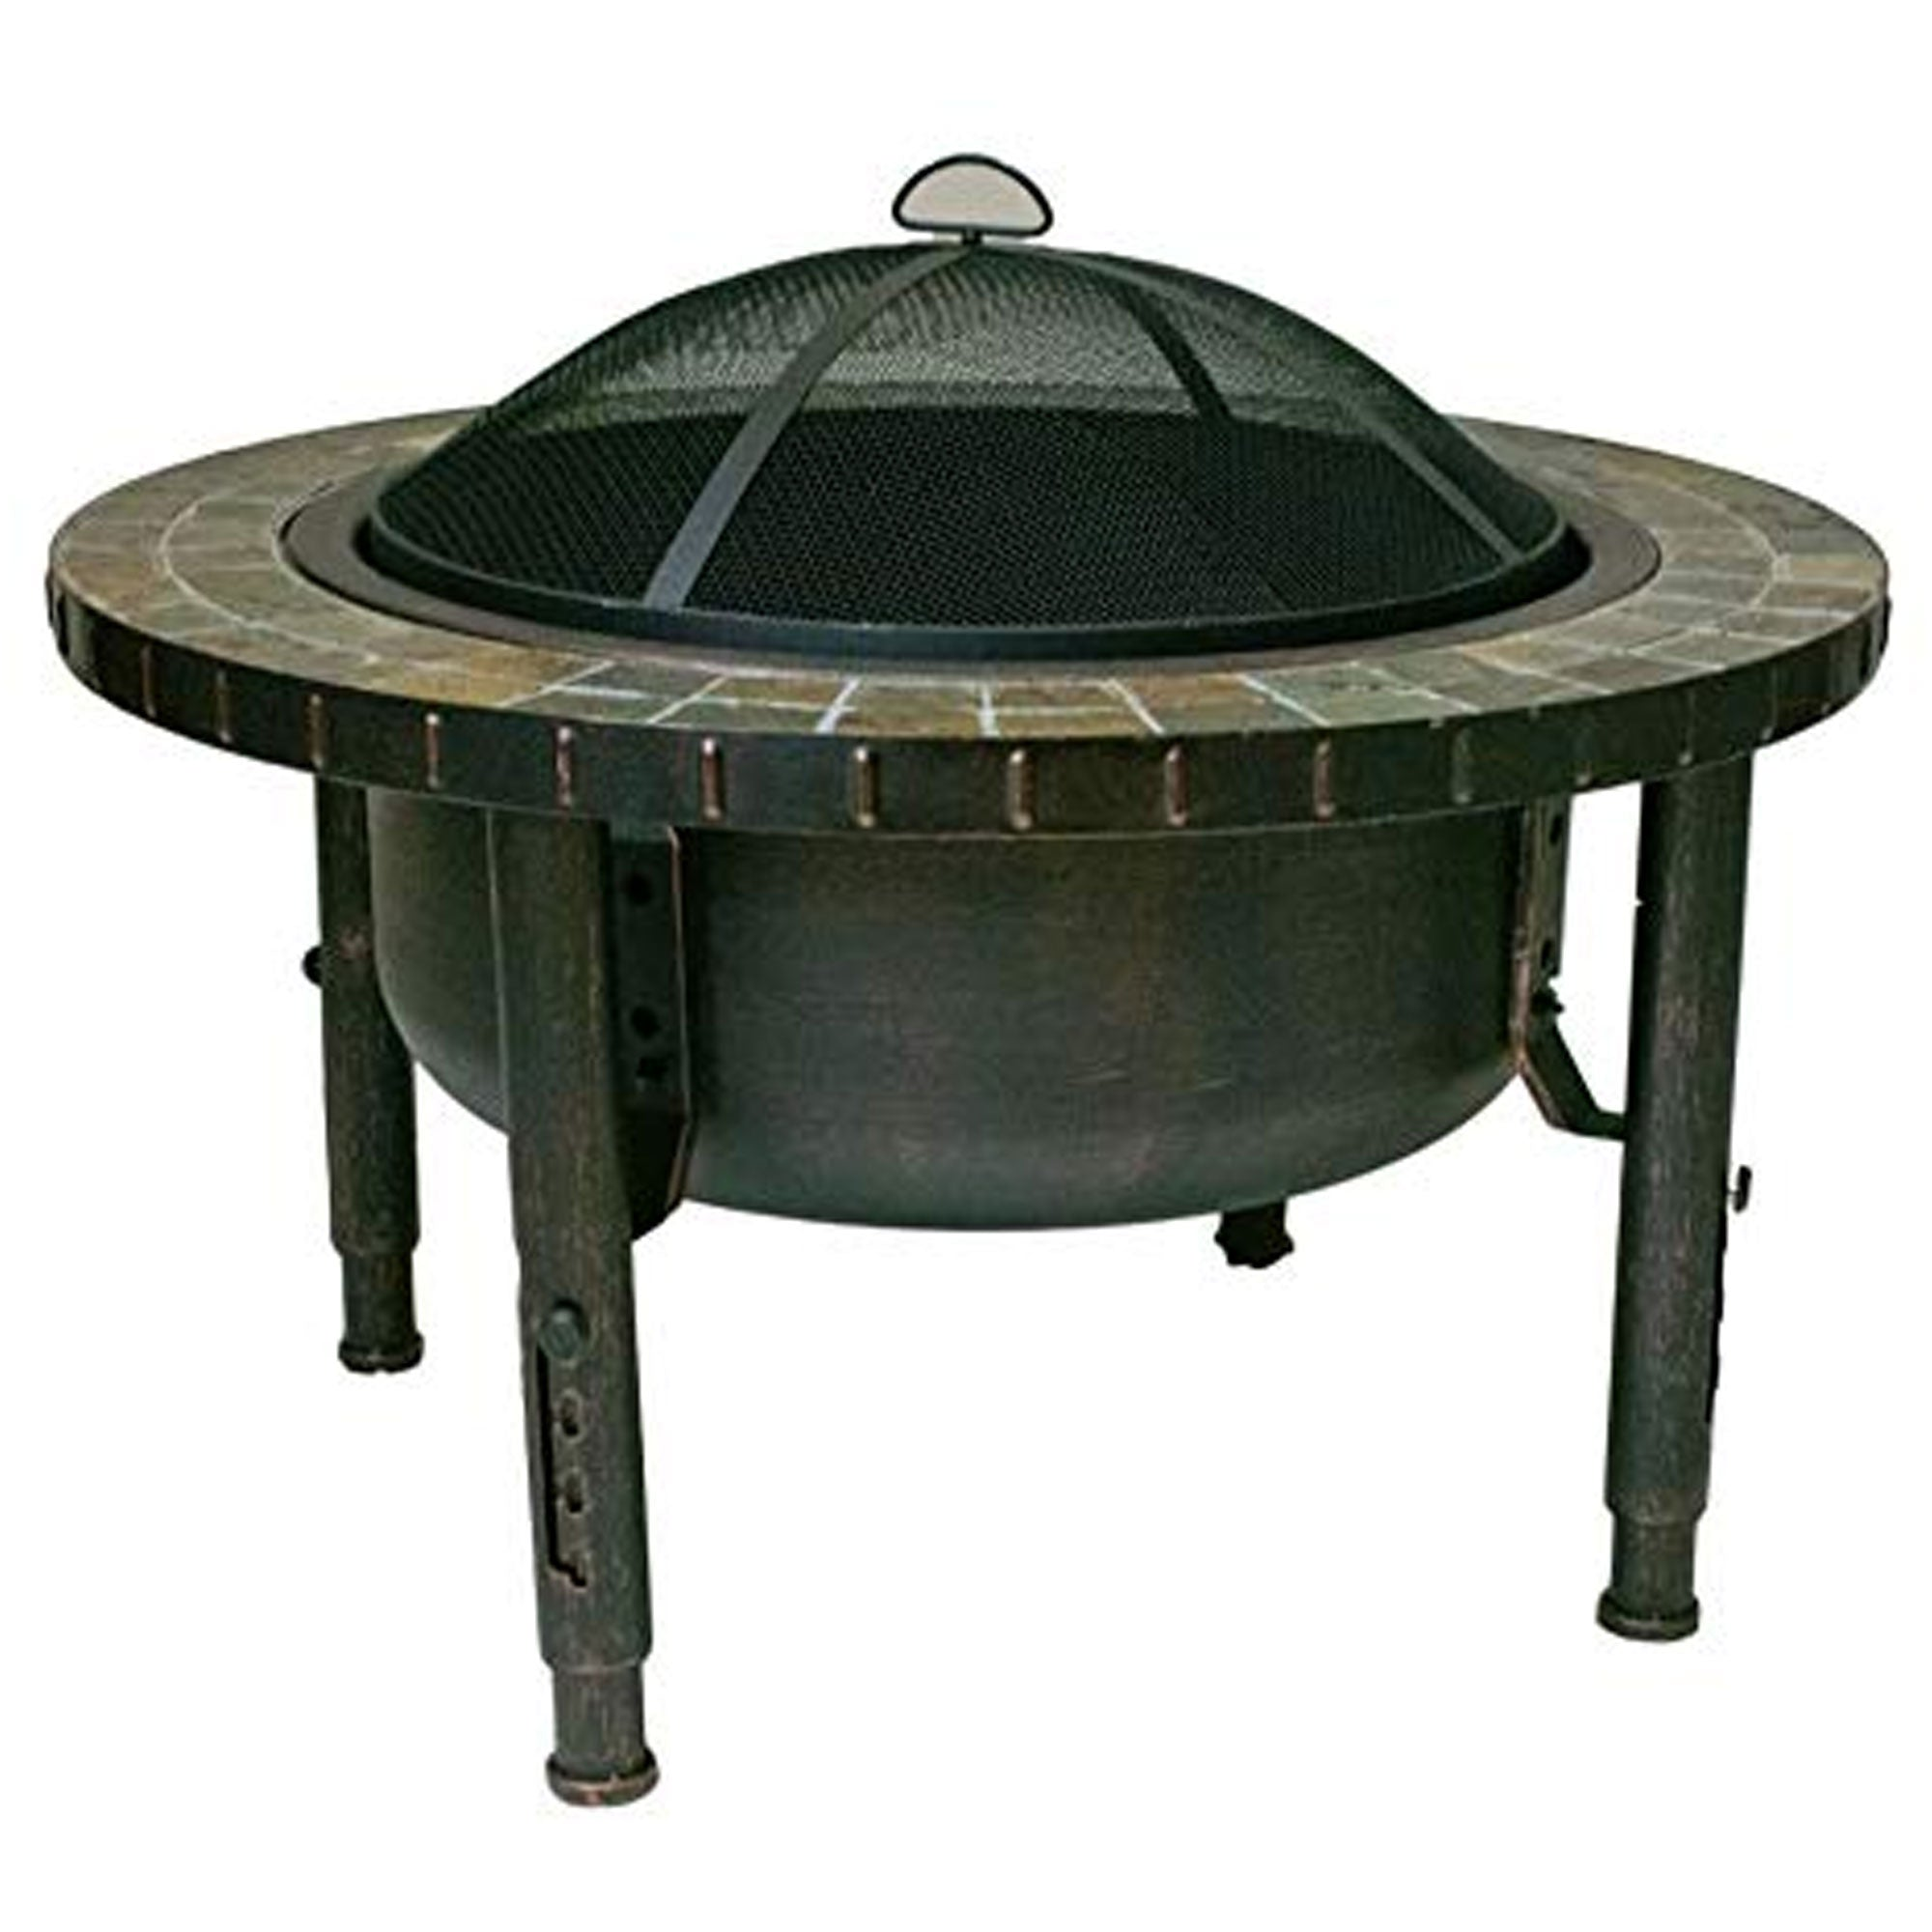 Wood Burning Fire Pits Global Outdoors Inc